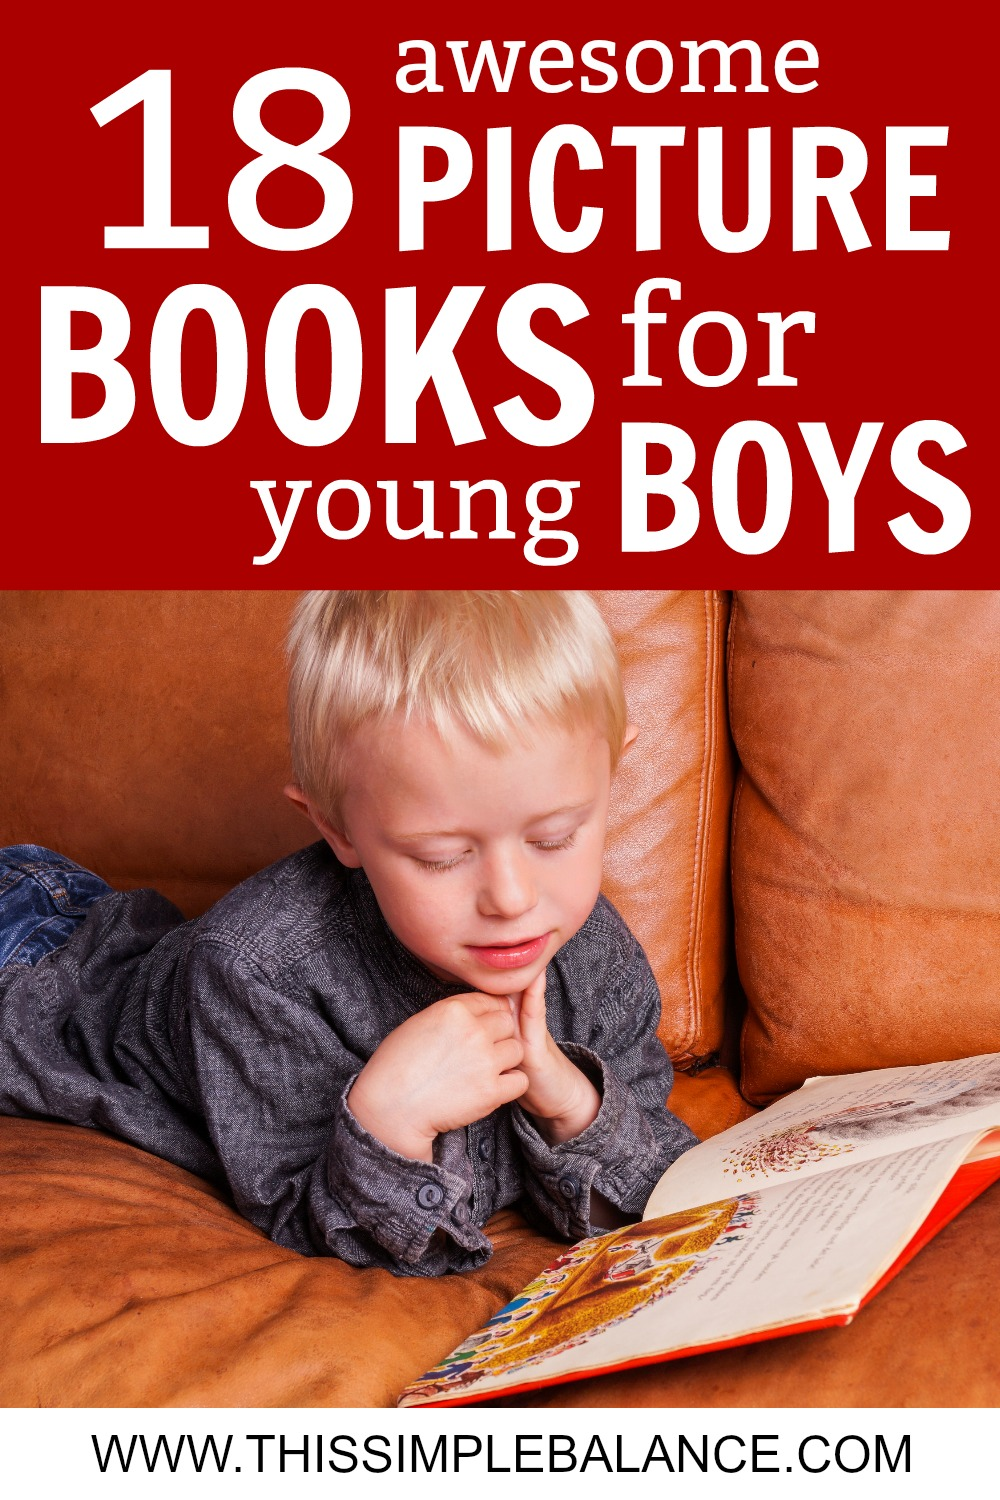 18 Books for Young Boys (ages 4-8): all of these books were favorite picture books for my boys! I hope yours enjoy them as much as we did.